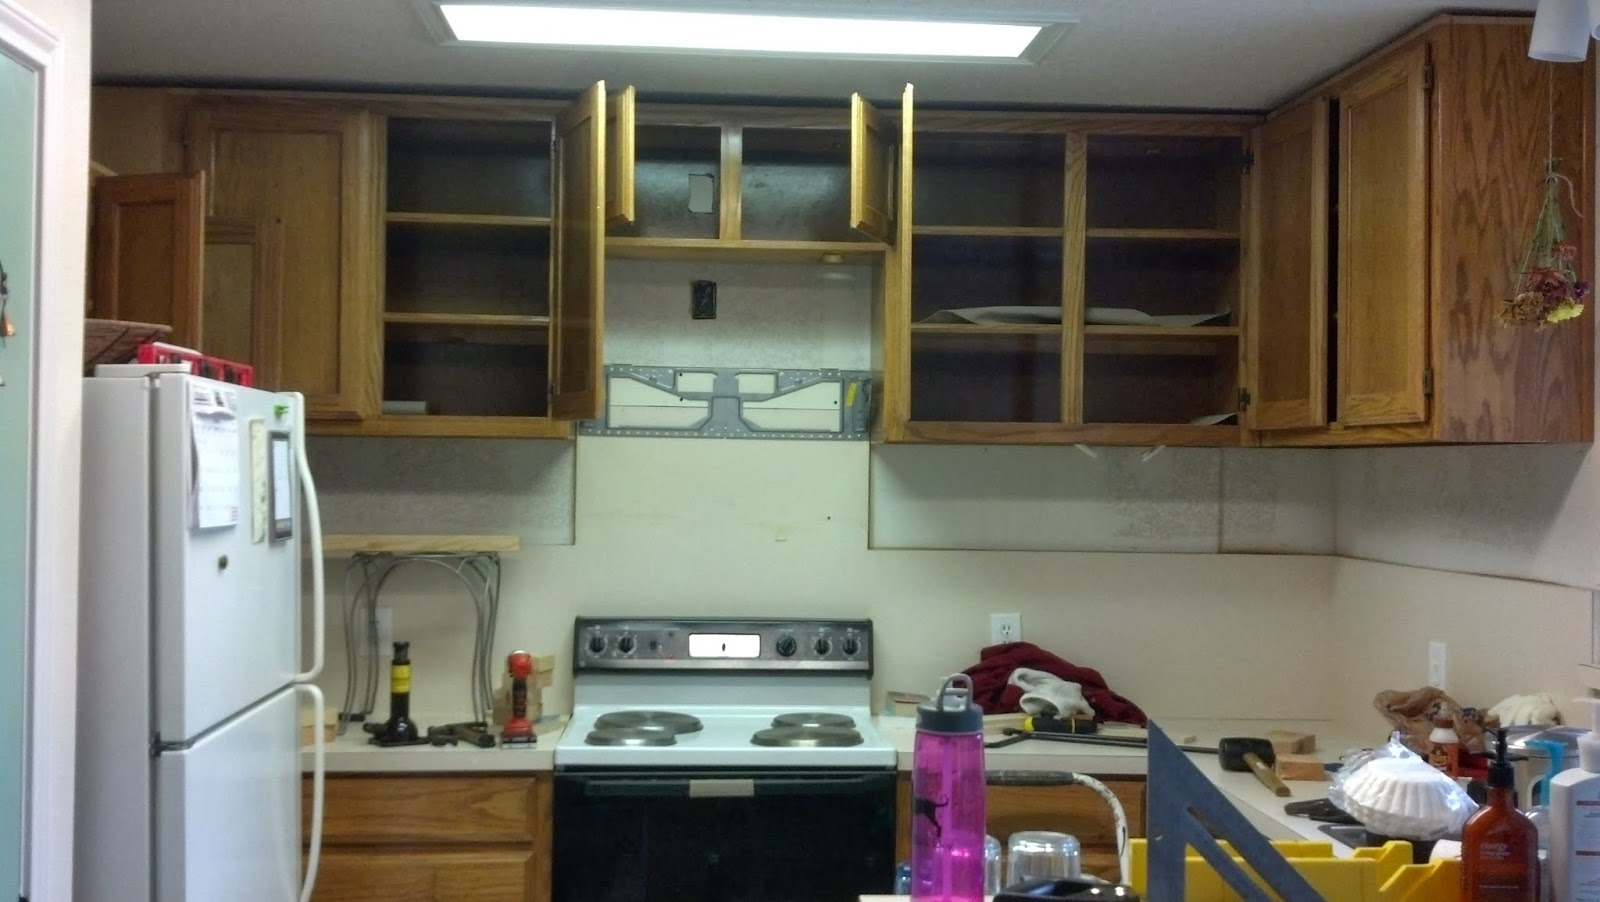 How to Fix Kitchen CabiShelf